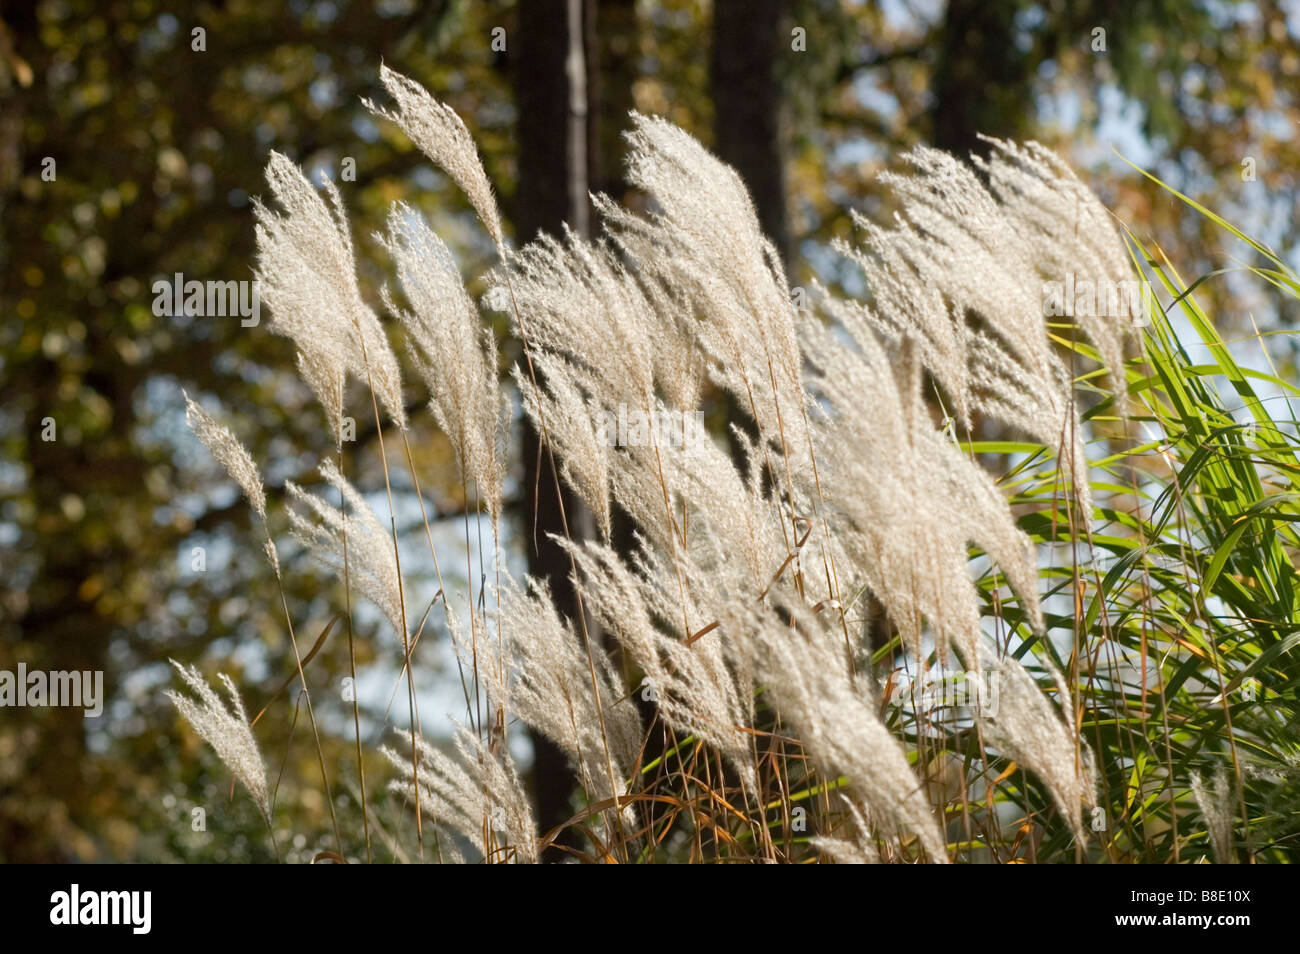 Chinese silvergrass, ornamental grass, Gramineae, Miscanthus sinensis var zebrinus - Stock Image